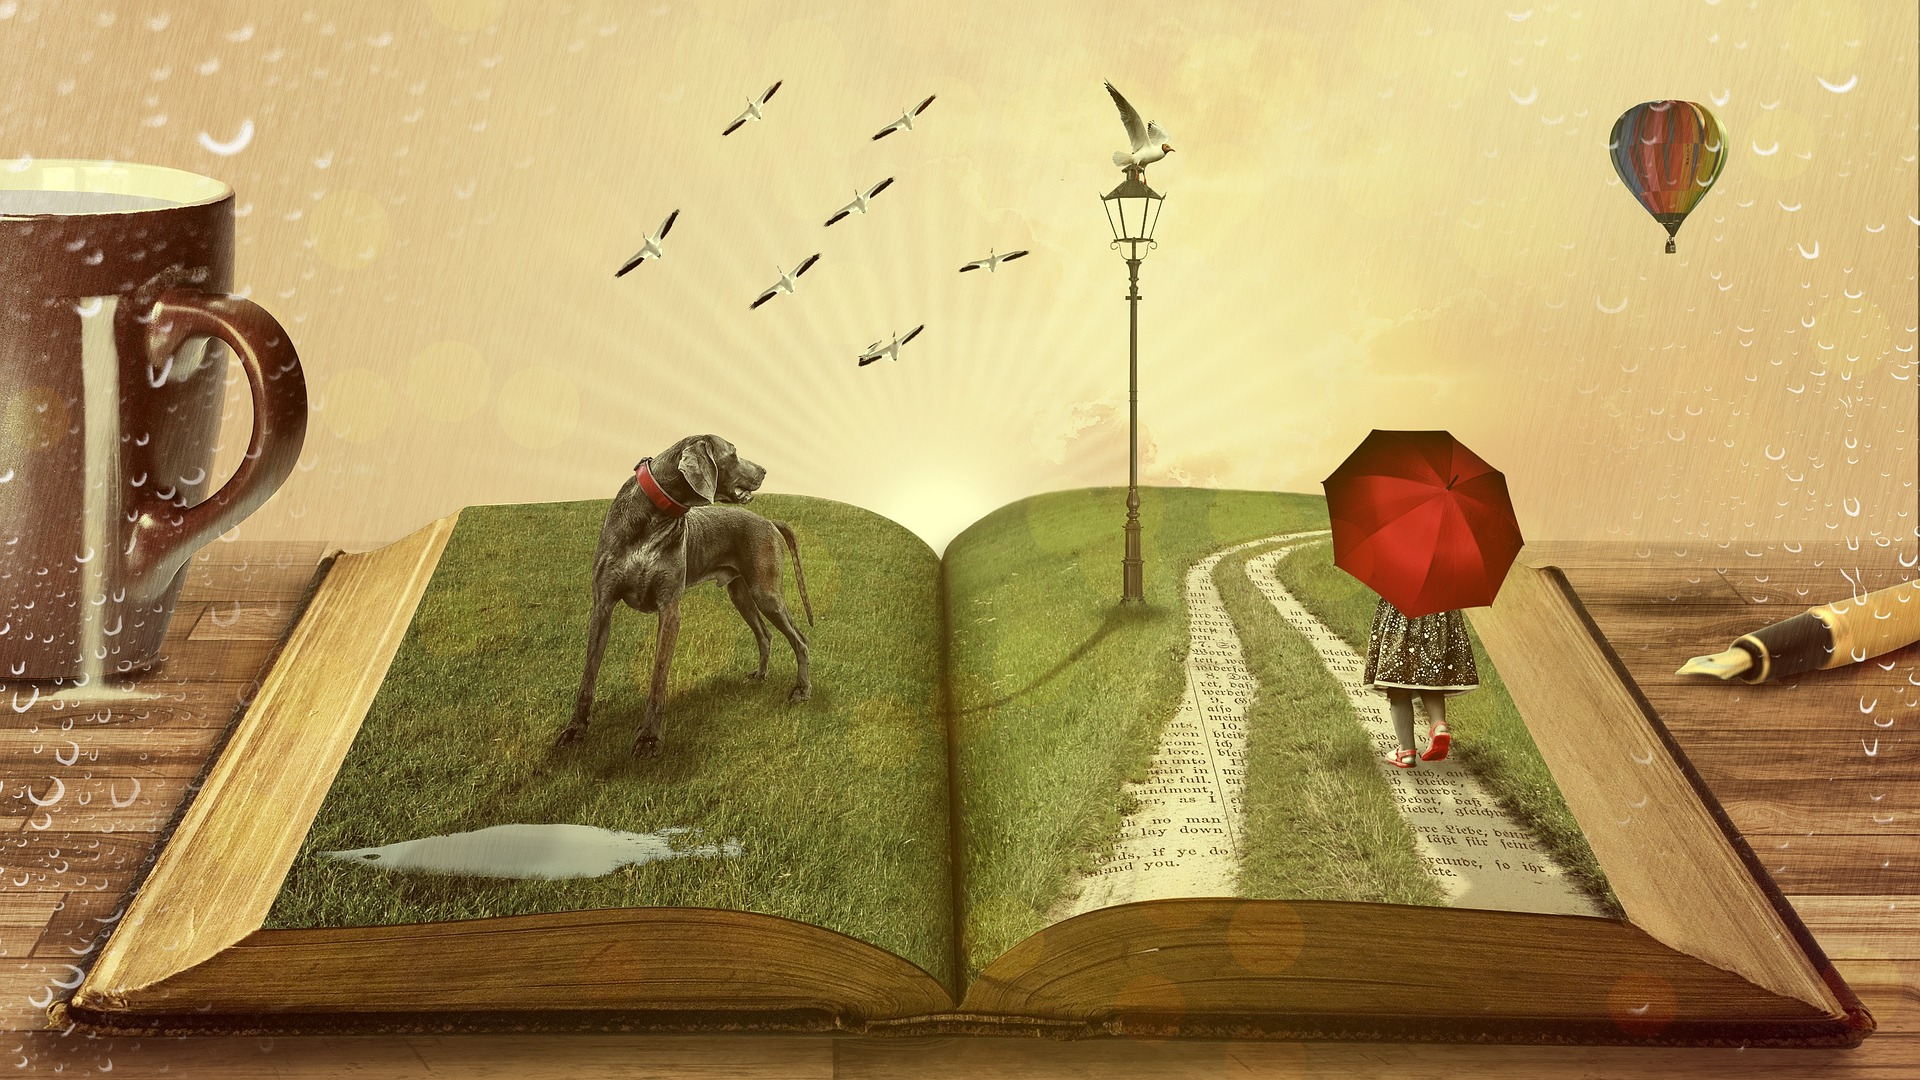 Old book open with dog, birds, road and girl with red umbrella on pages.  Coffee cup, pen and balloon in the background